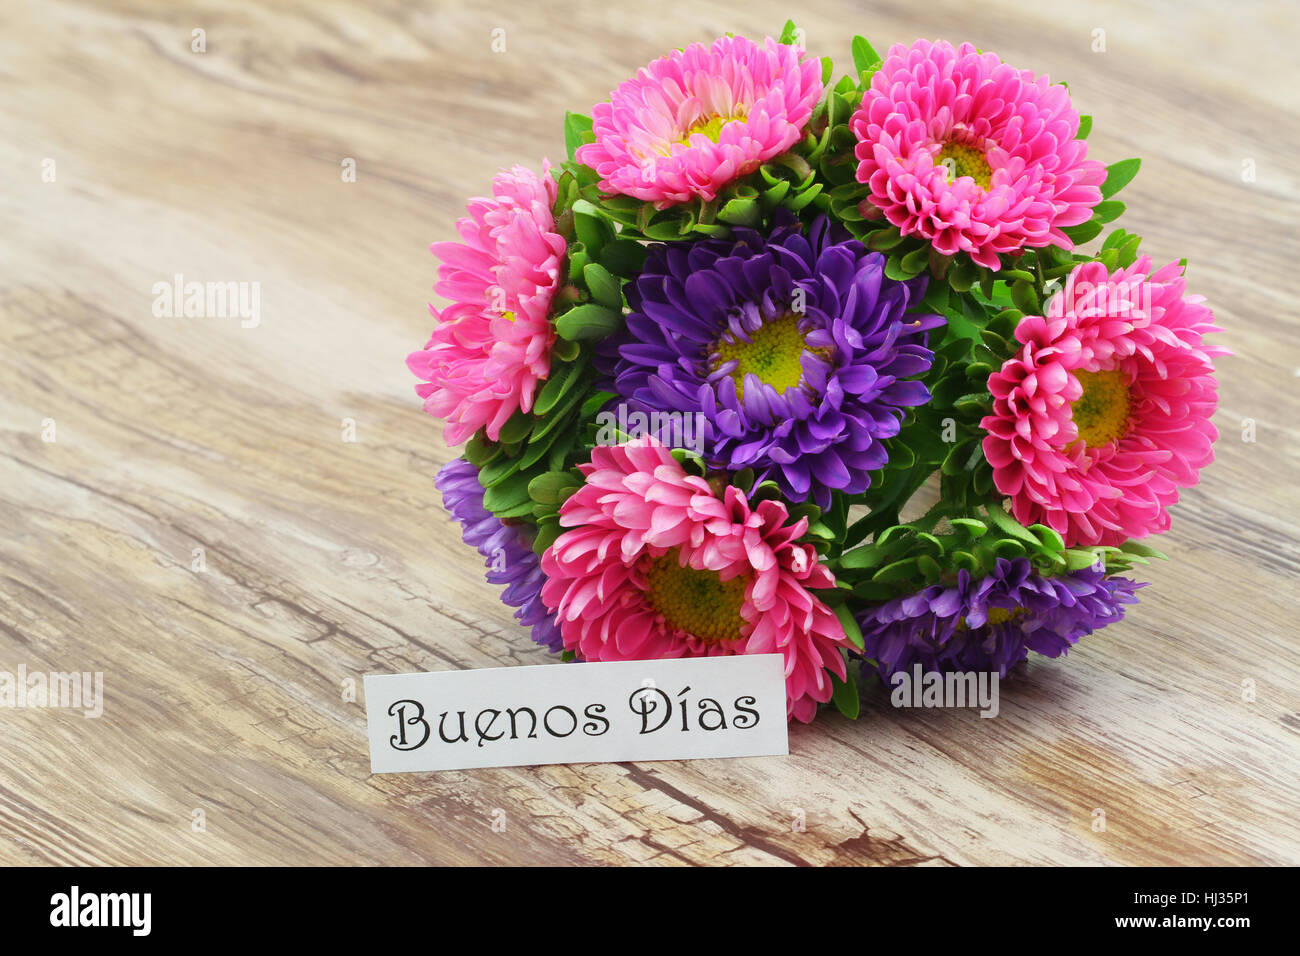 Buenos dias (good morning in Spanish) card with colorful daisy ...